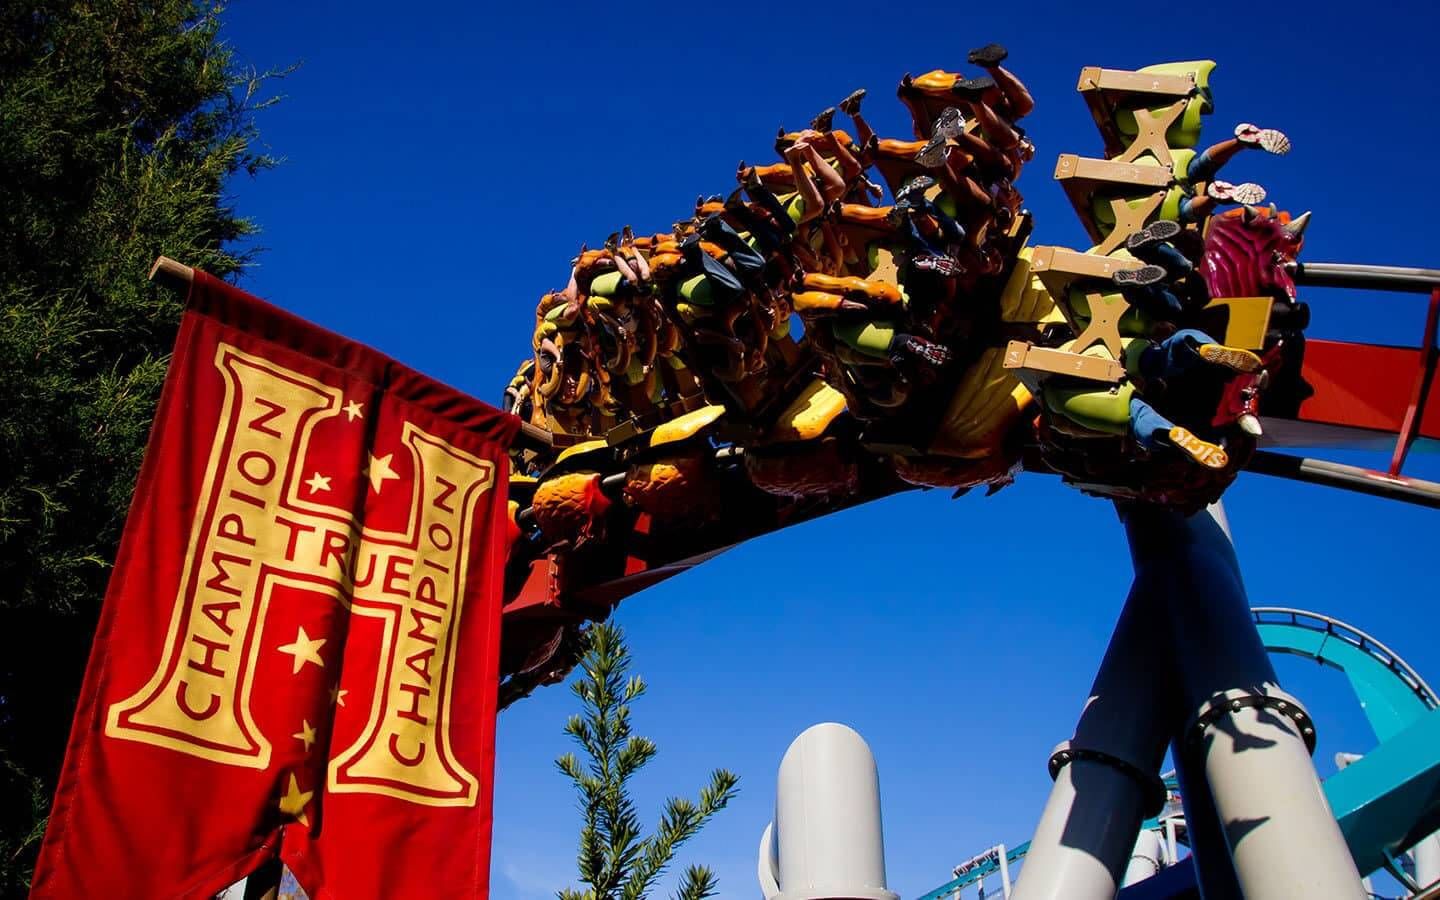 Novidades em Orlando em 2019: The Dragon Challenge no Islads of Adventure